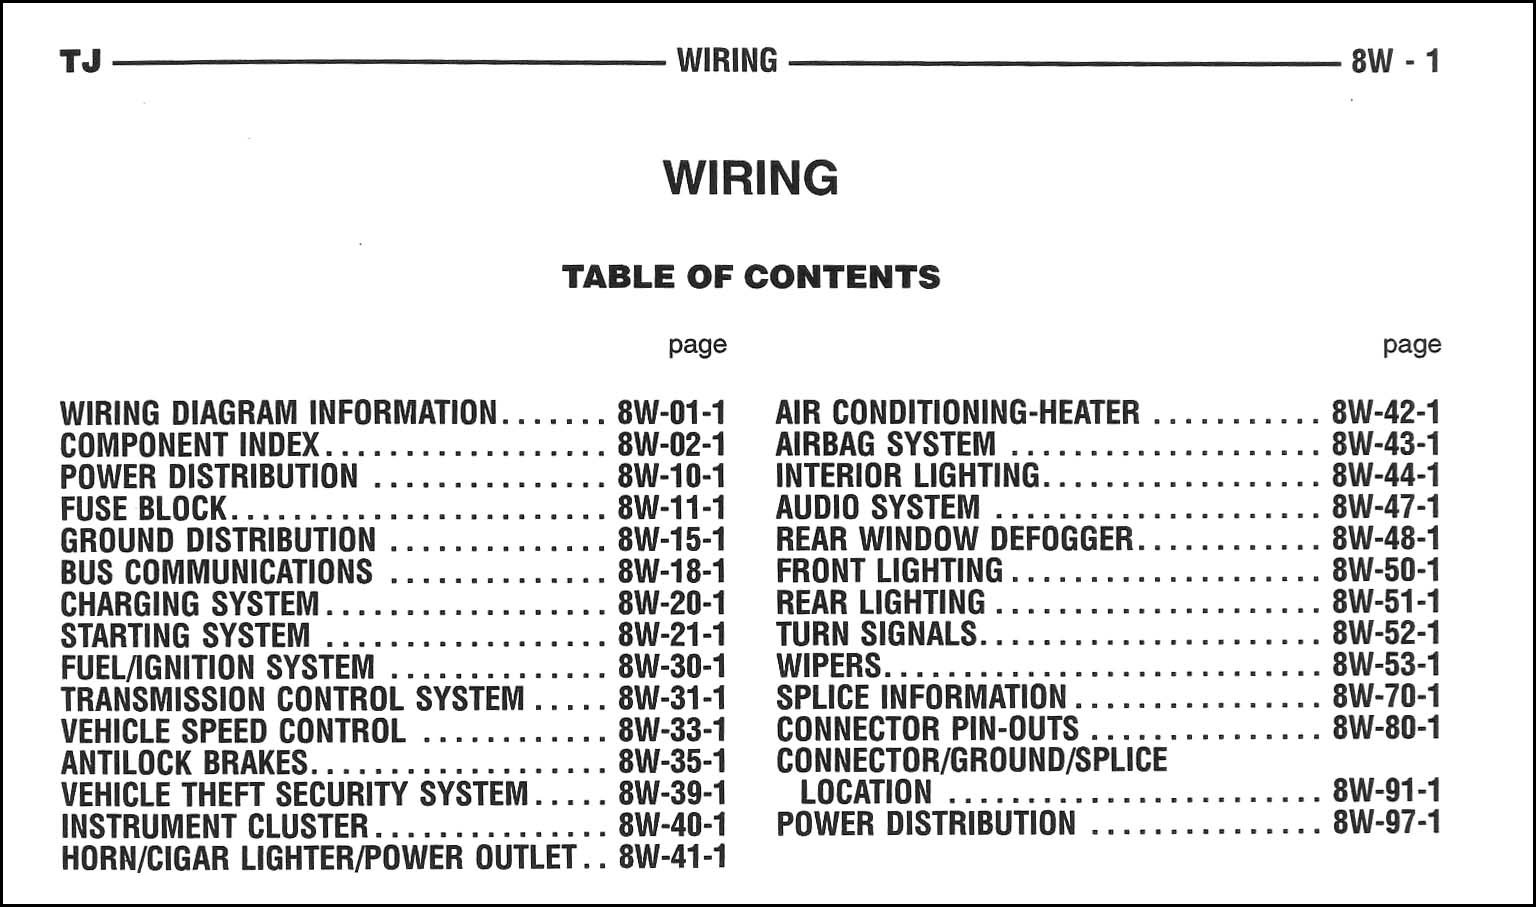 jeep tj wiring simple wiring diagram 2005 jeep wrangler wiring diagram manual original jeep tj wiring harness 2005 jeep wrangler wiring diagram